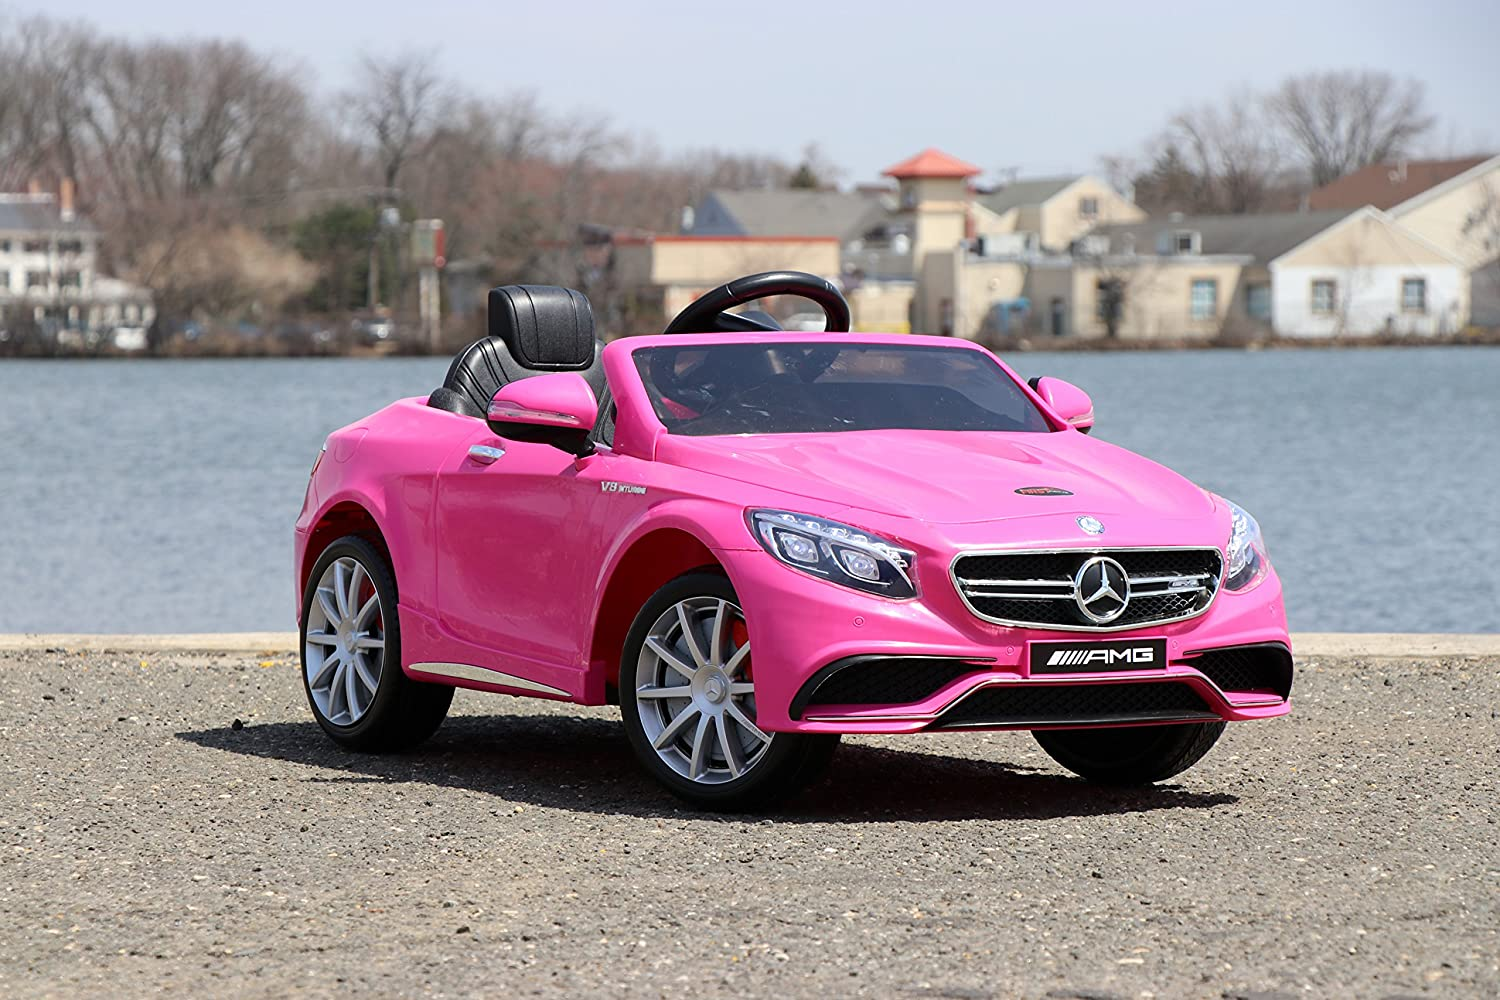 Mercedes Power Wheels >> First Drive Mercedes Benz S63 Pink 12v Kids Cars Dual Motor Electric Power Ride On Car With Remote Mp3 Aux Cord Led Headlights And Premium